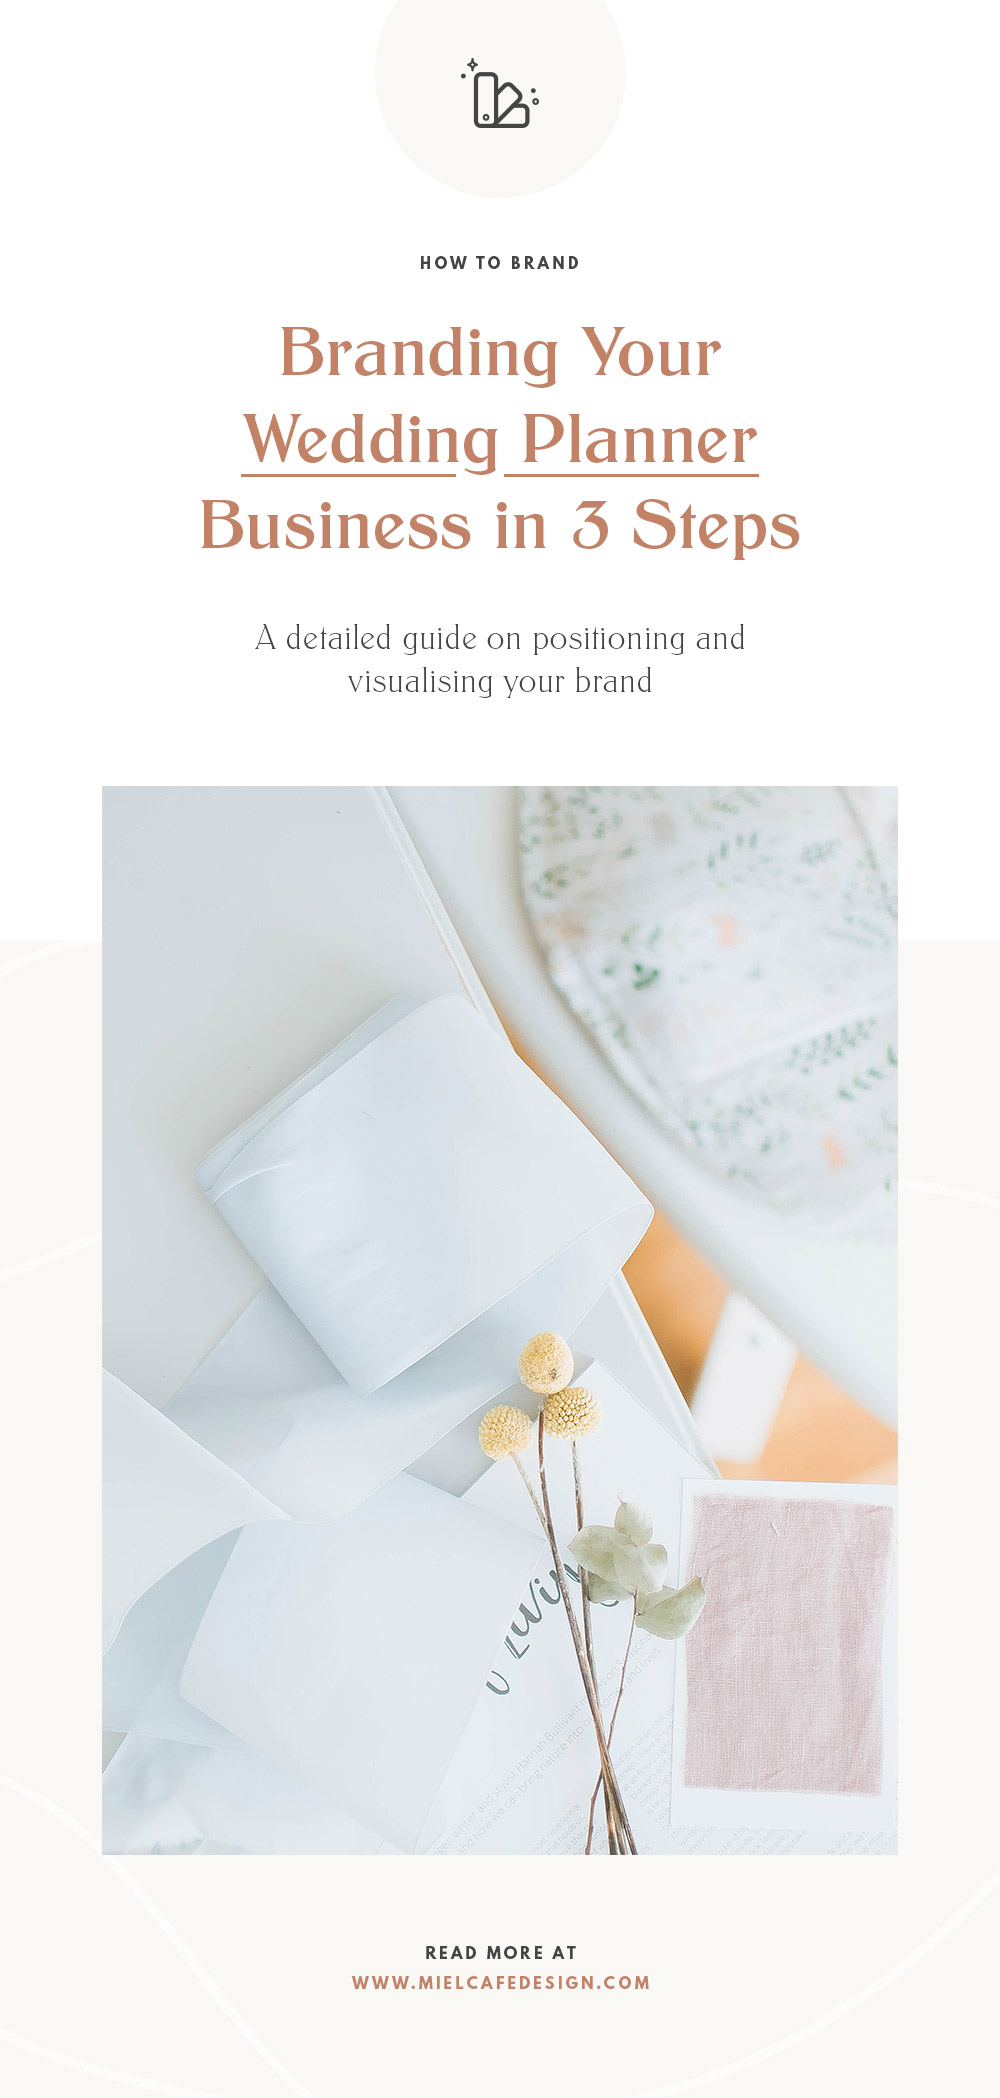 How to create a wedding planner brand: a detailed guide on positioning and visualising your wedding planner brand in 3 steps